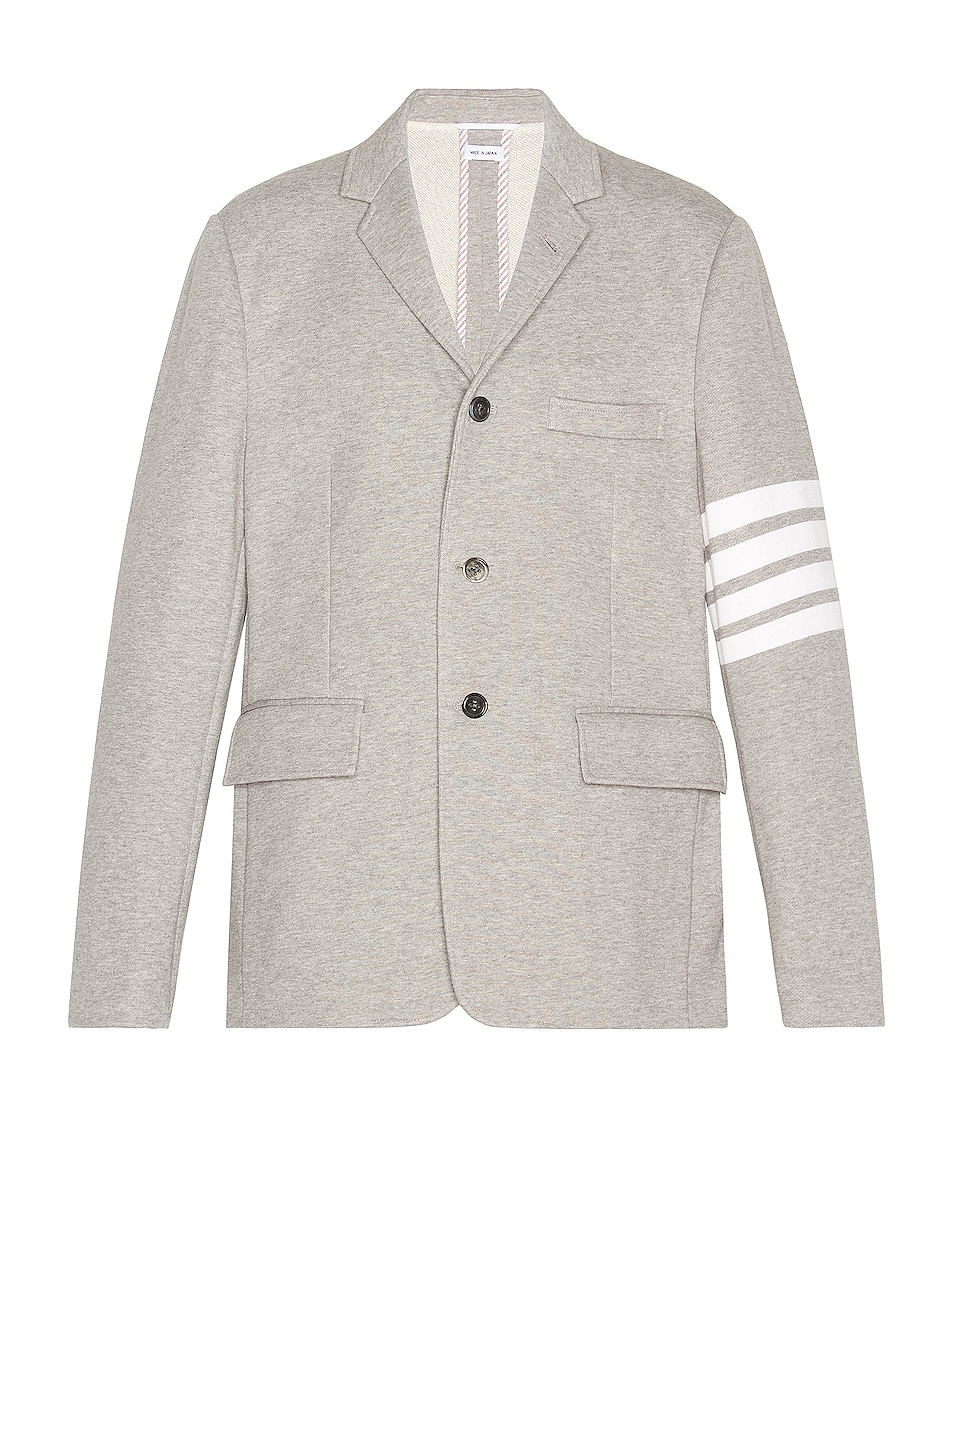 Image 1 of Thom Browne 4 Bar Unconstructed Suit Jacket in Light Grey